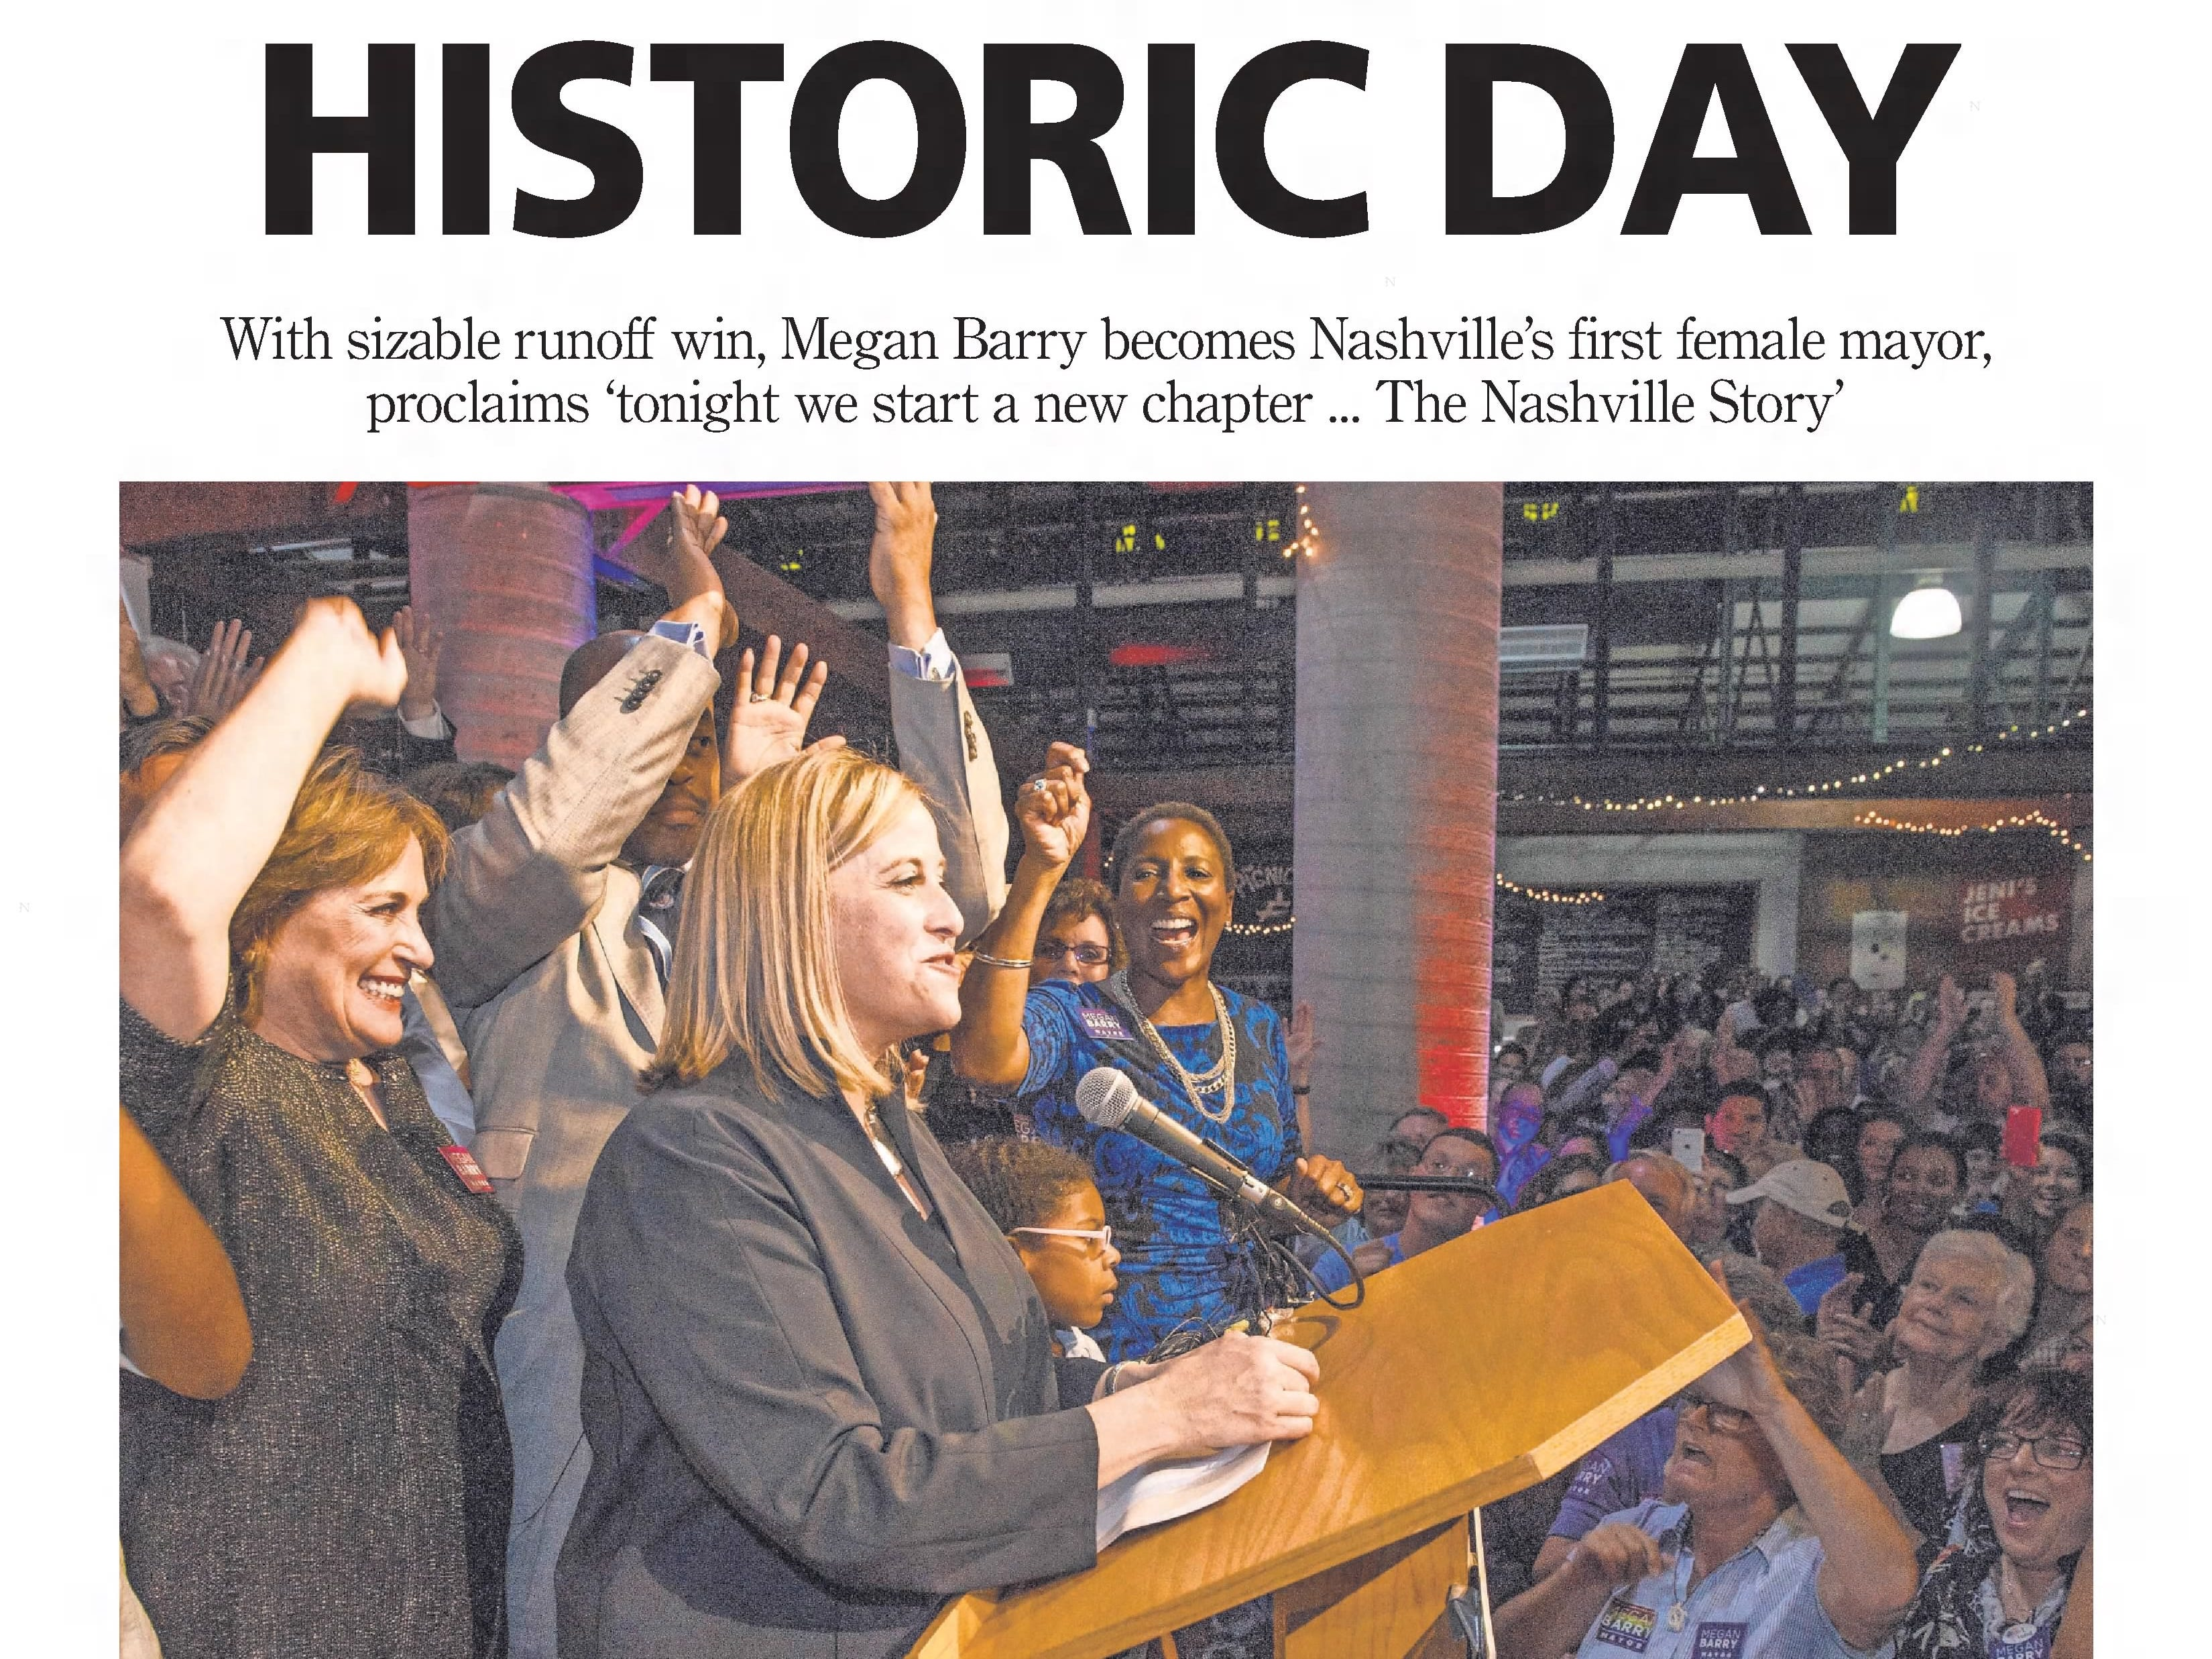 The front page of the Sept. 11, 2015 of The Tennessean for the coverage of the election of Mayor Megan Barry.